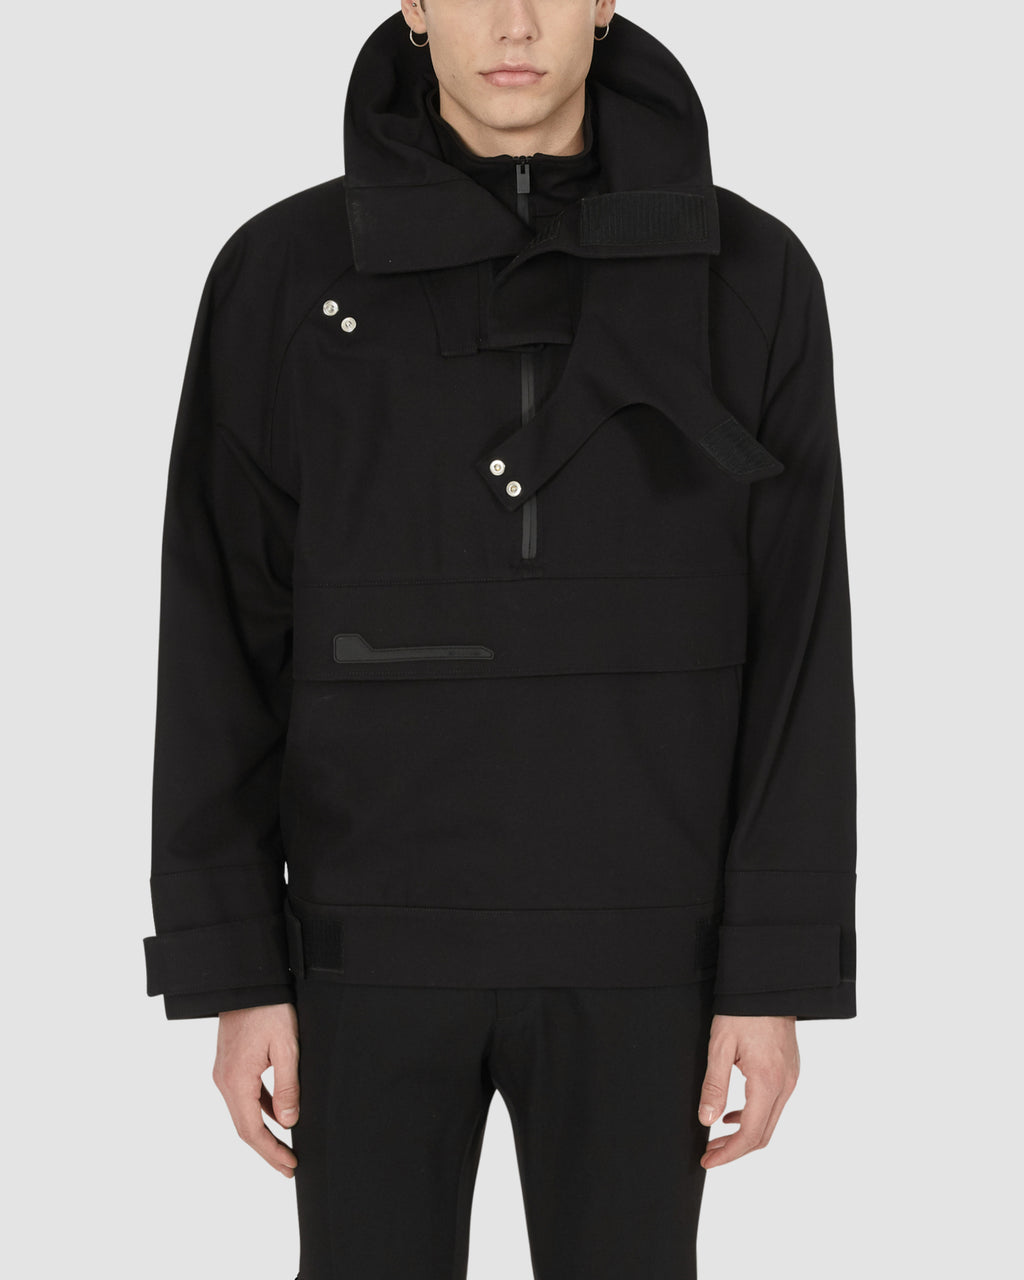 1017 ALYX 9SM | MIDNIGHT PULLOVER | Outerwear | BLACK, Google Shopping, Man, MEN, Outerwear, S20, S20EXSH